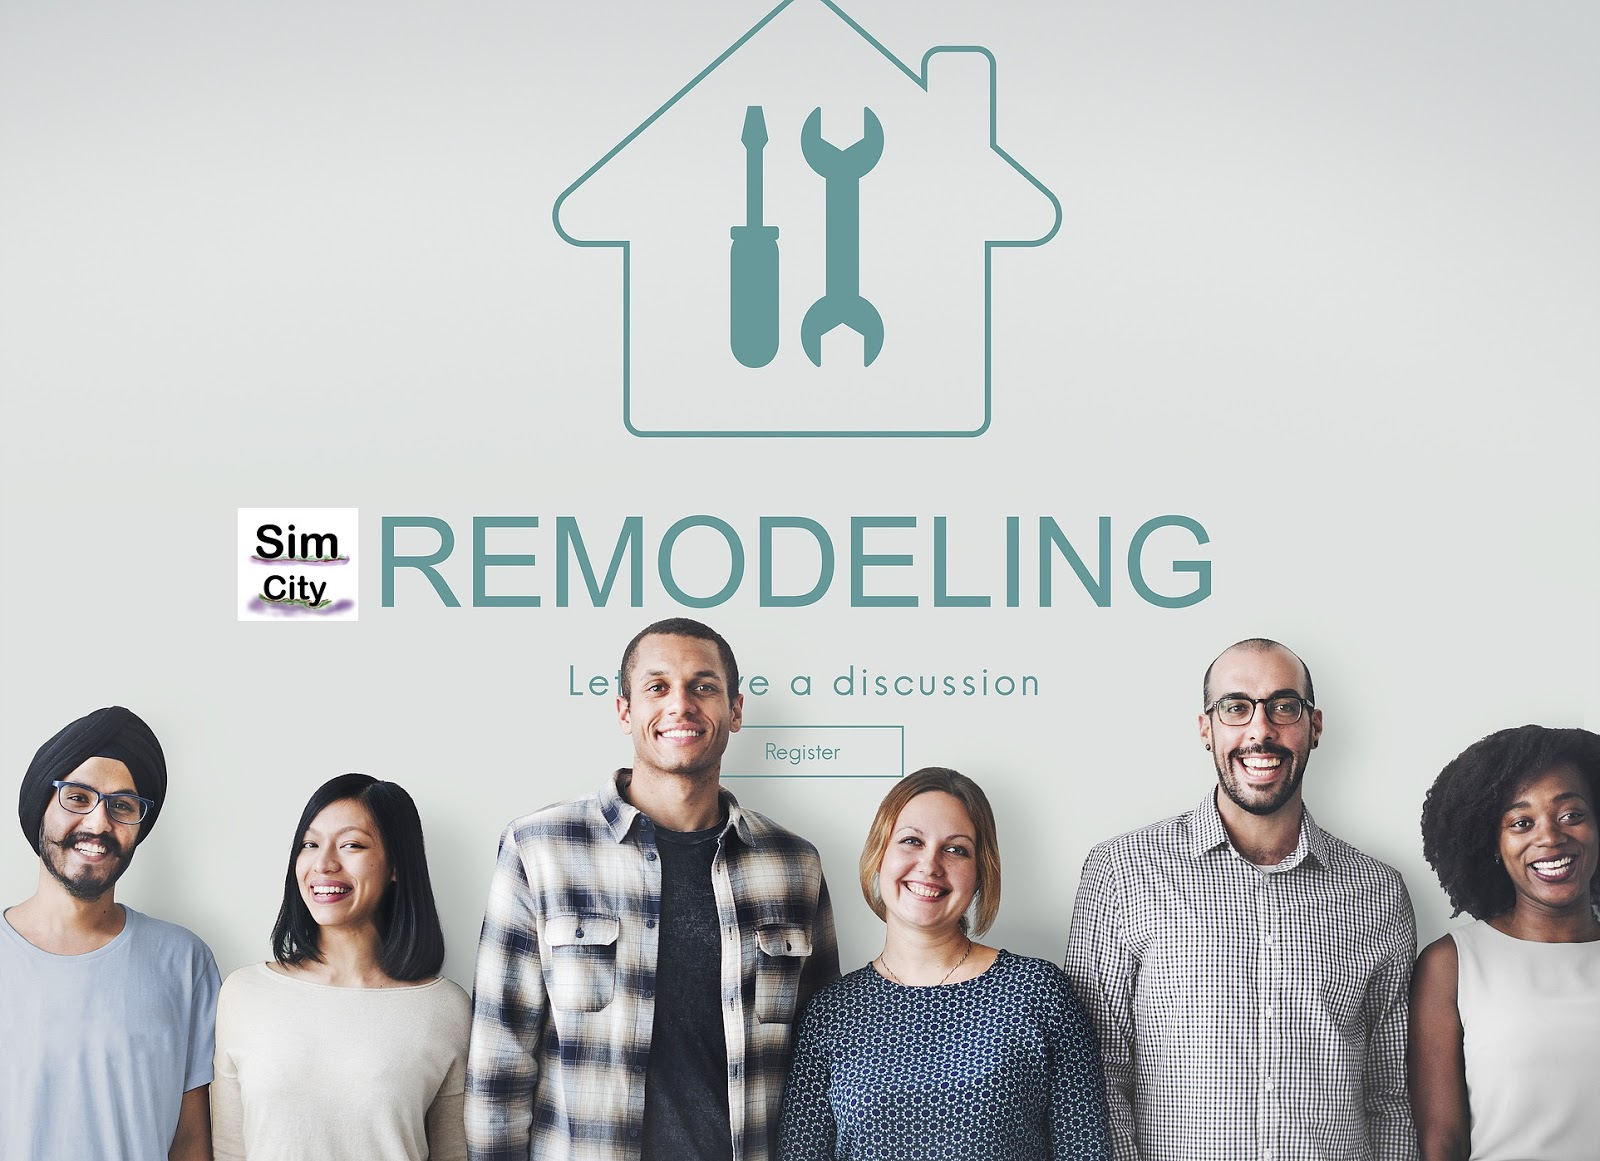 Simcity House Remodeling and Painting Services in Hayward Fremont CA